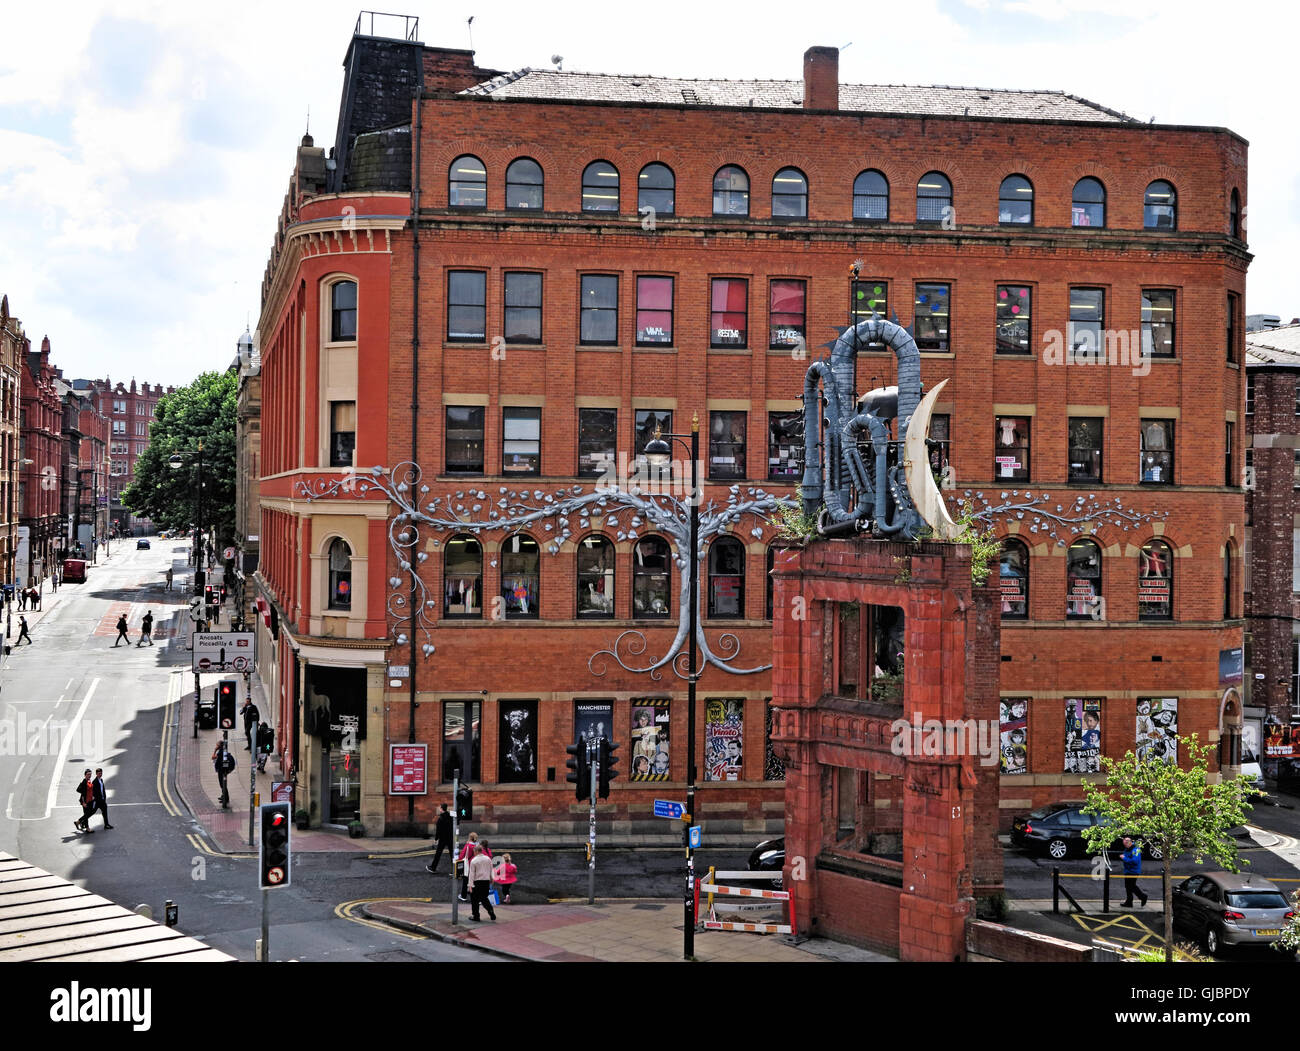 Afflecks Palace, Northern Quarter, Manchester, North West England, UK - Stock Image